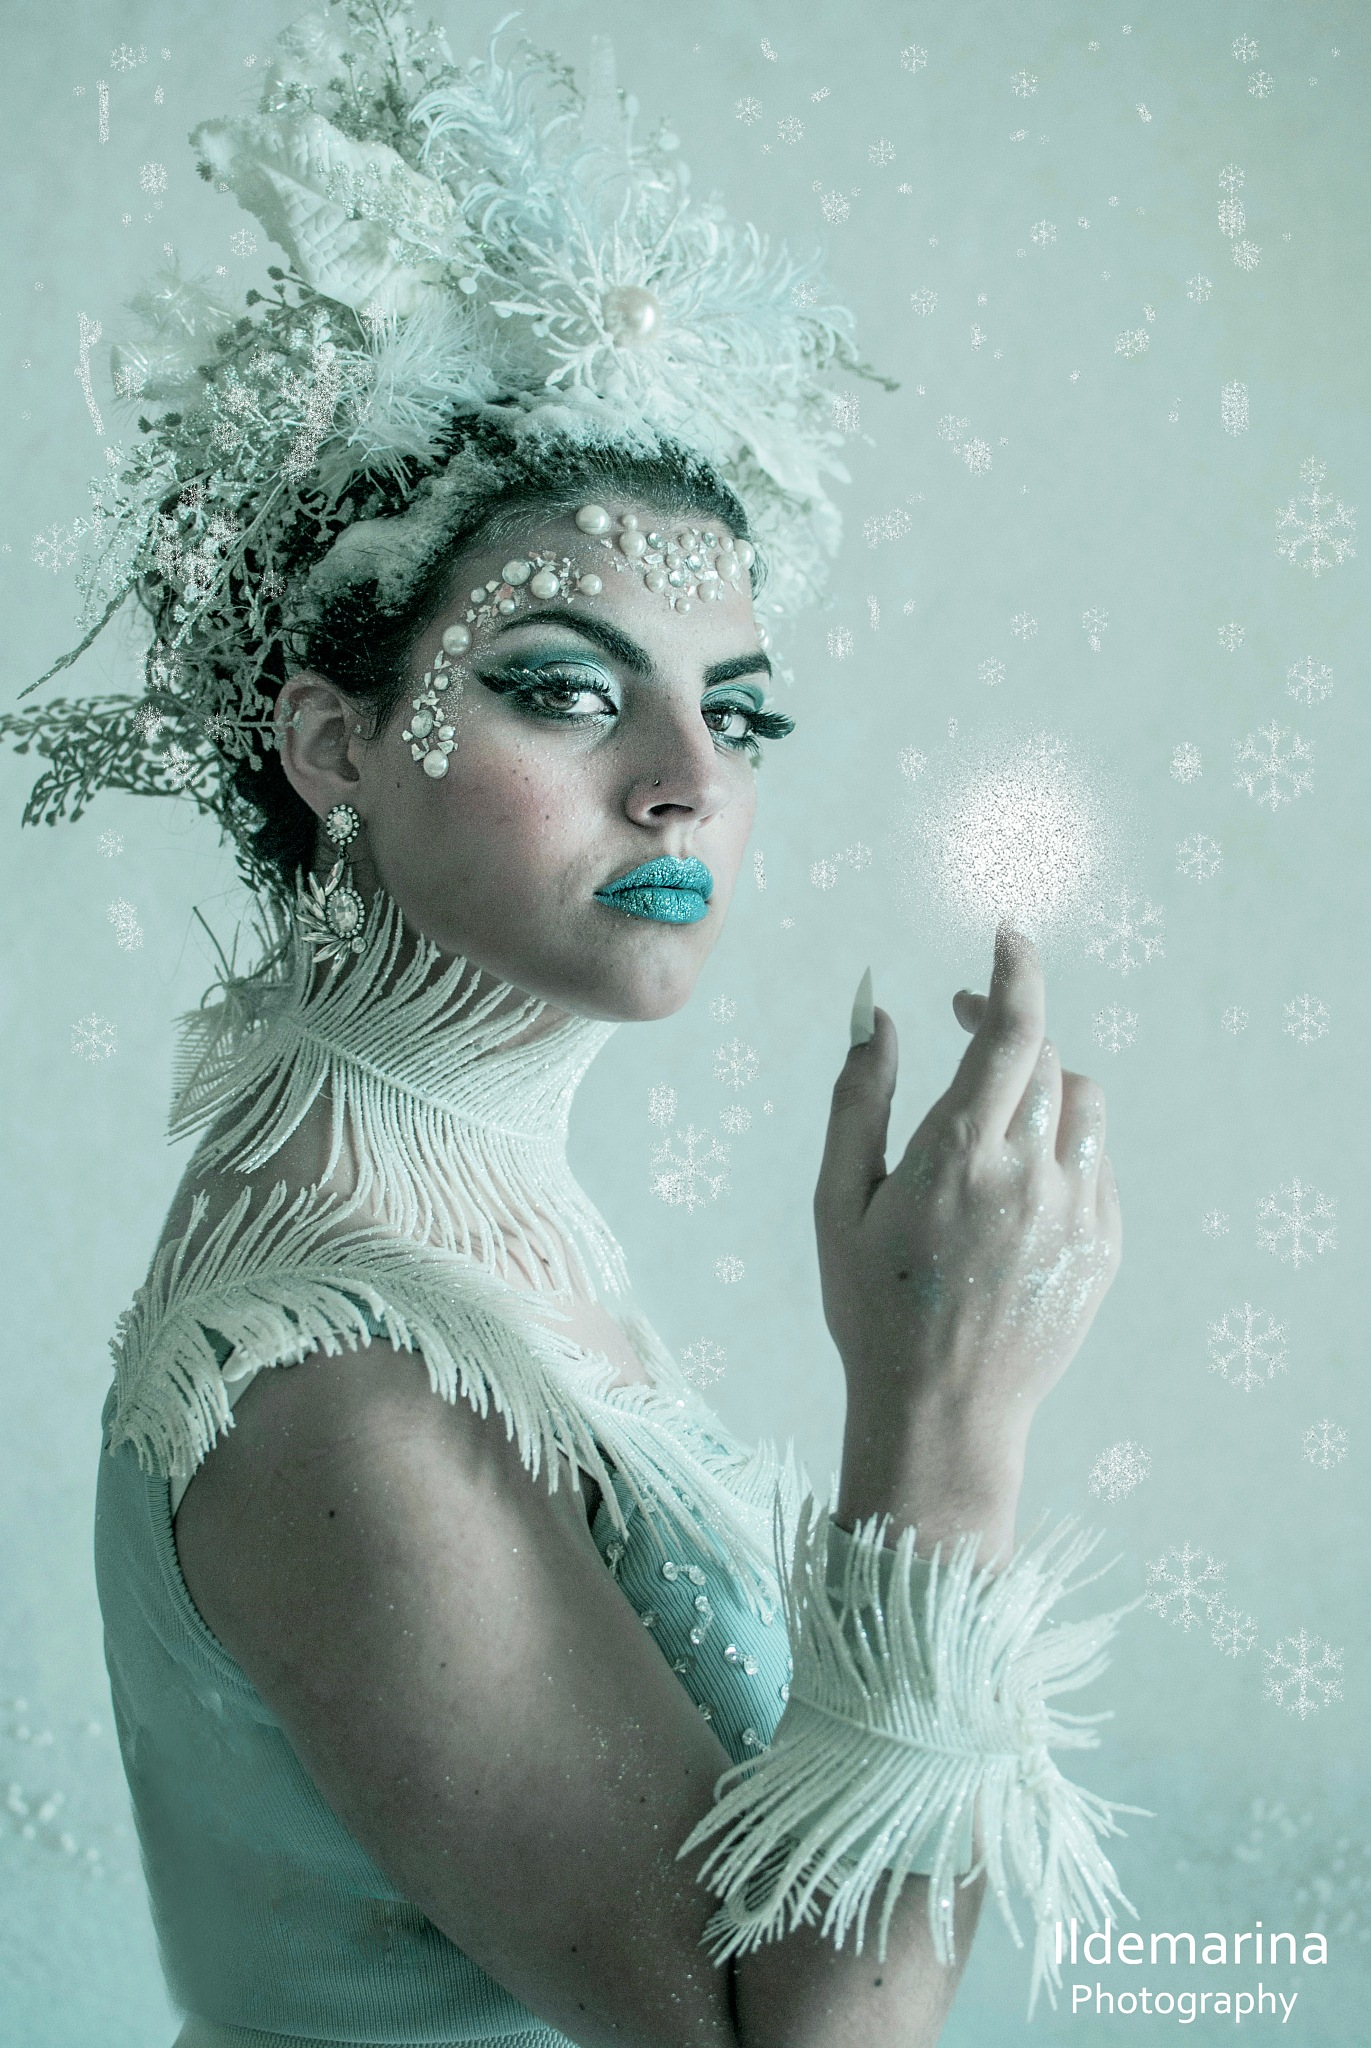 The ice queen by Ildemarina